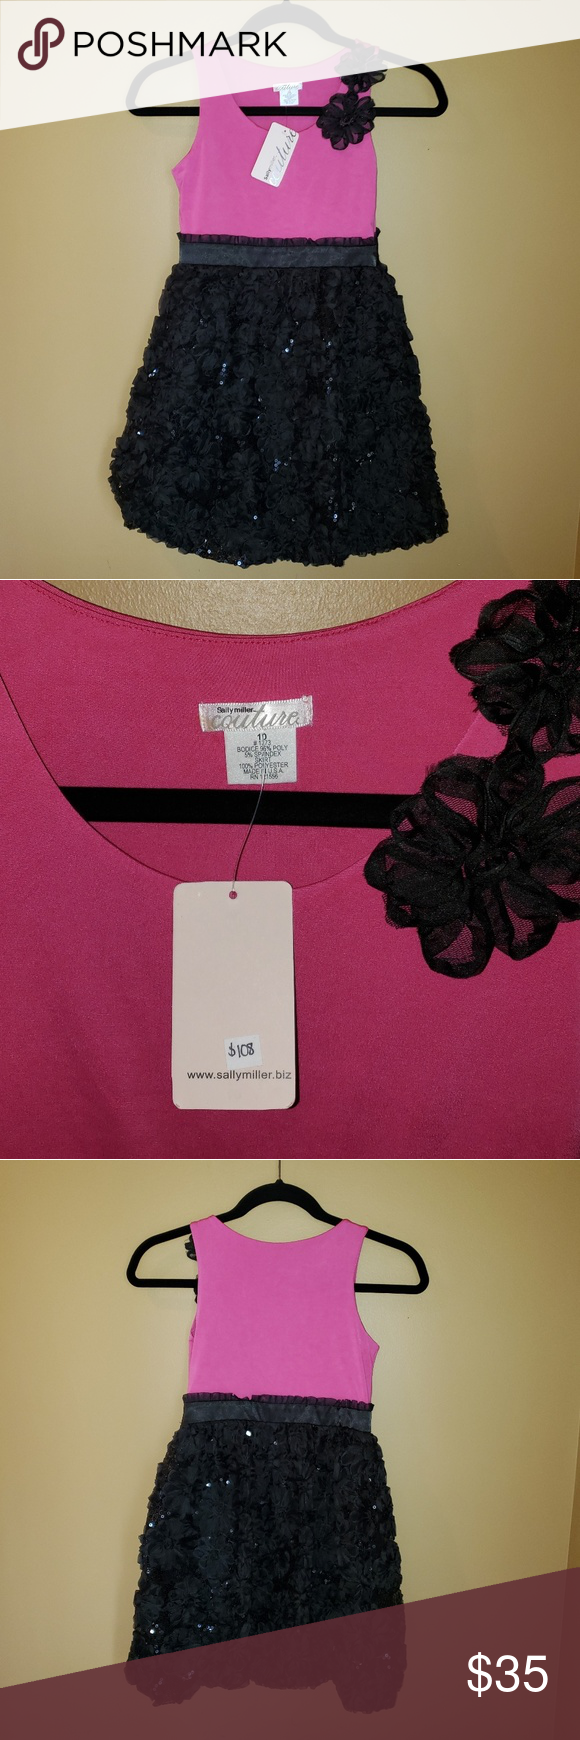 Sally Miller couture size 10 girls dress Sally Miller couture size 10 girls dress Sally Miller Dresses Formal #sallymiller Sally Miller couture size 10 girls dress Sally Miller couture size 10 girls dress Sally Miller Dresses Formal #sallymiller